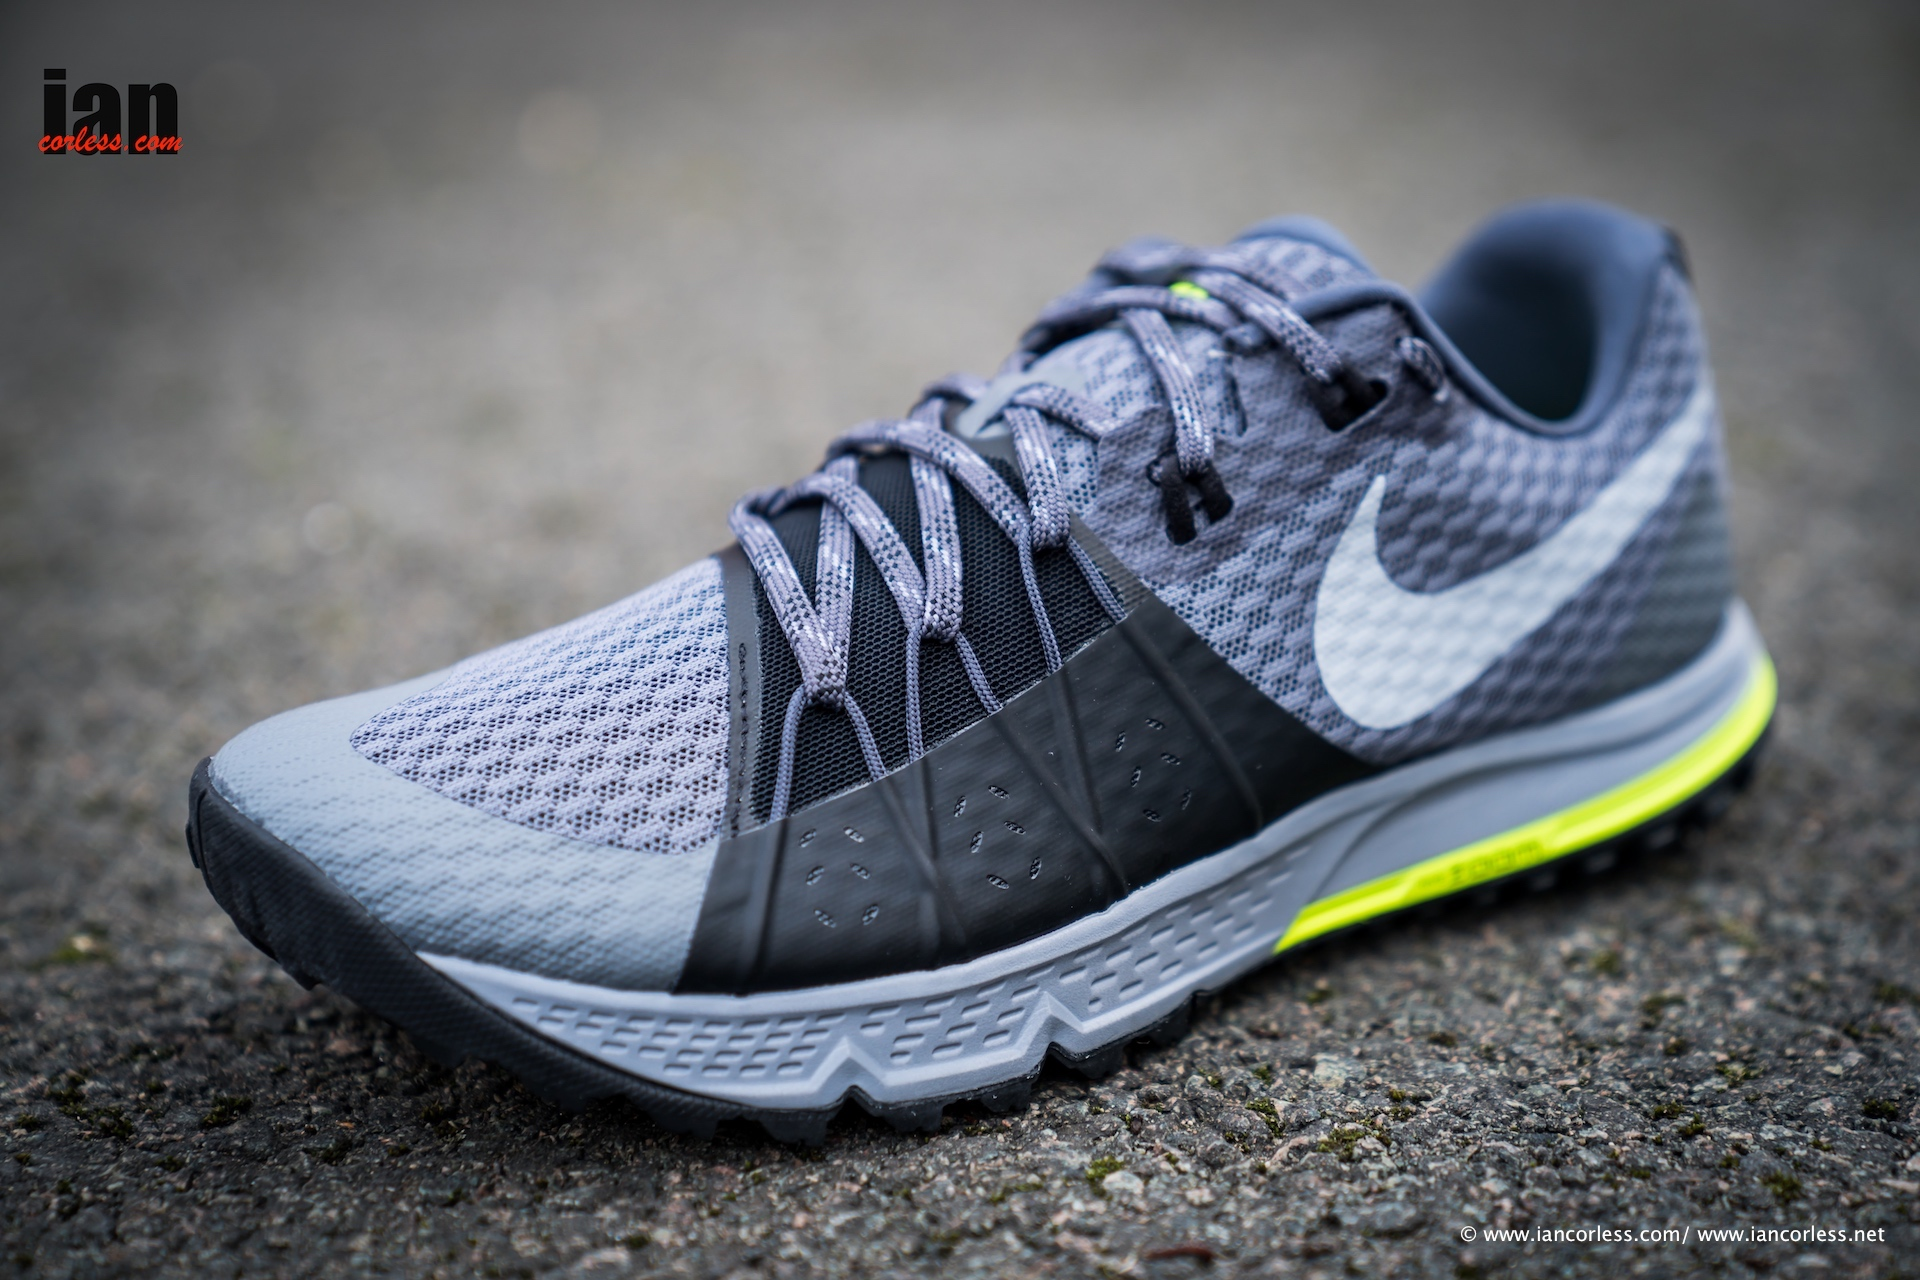 Nike Air Zoom Wildhorse 4 Shoe Review |